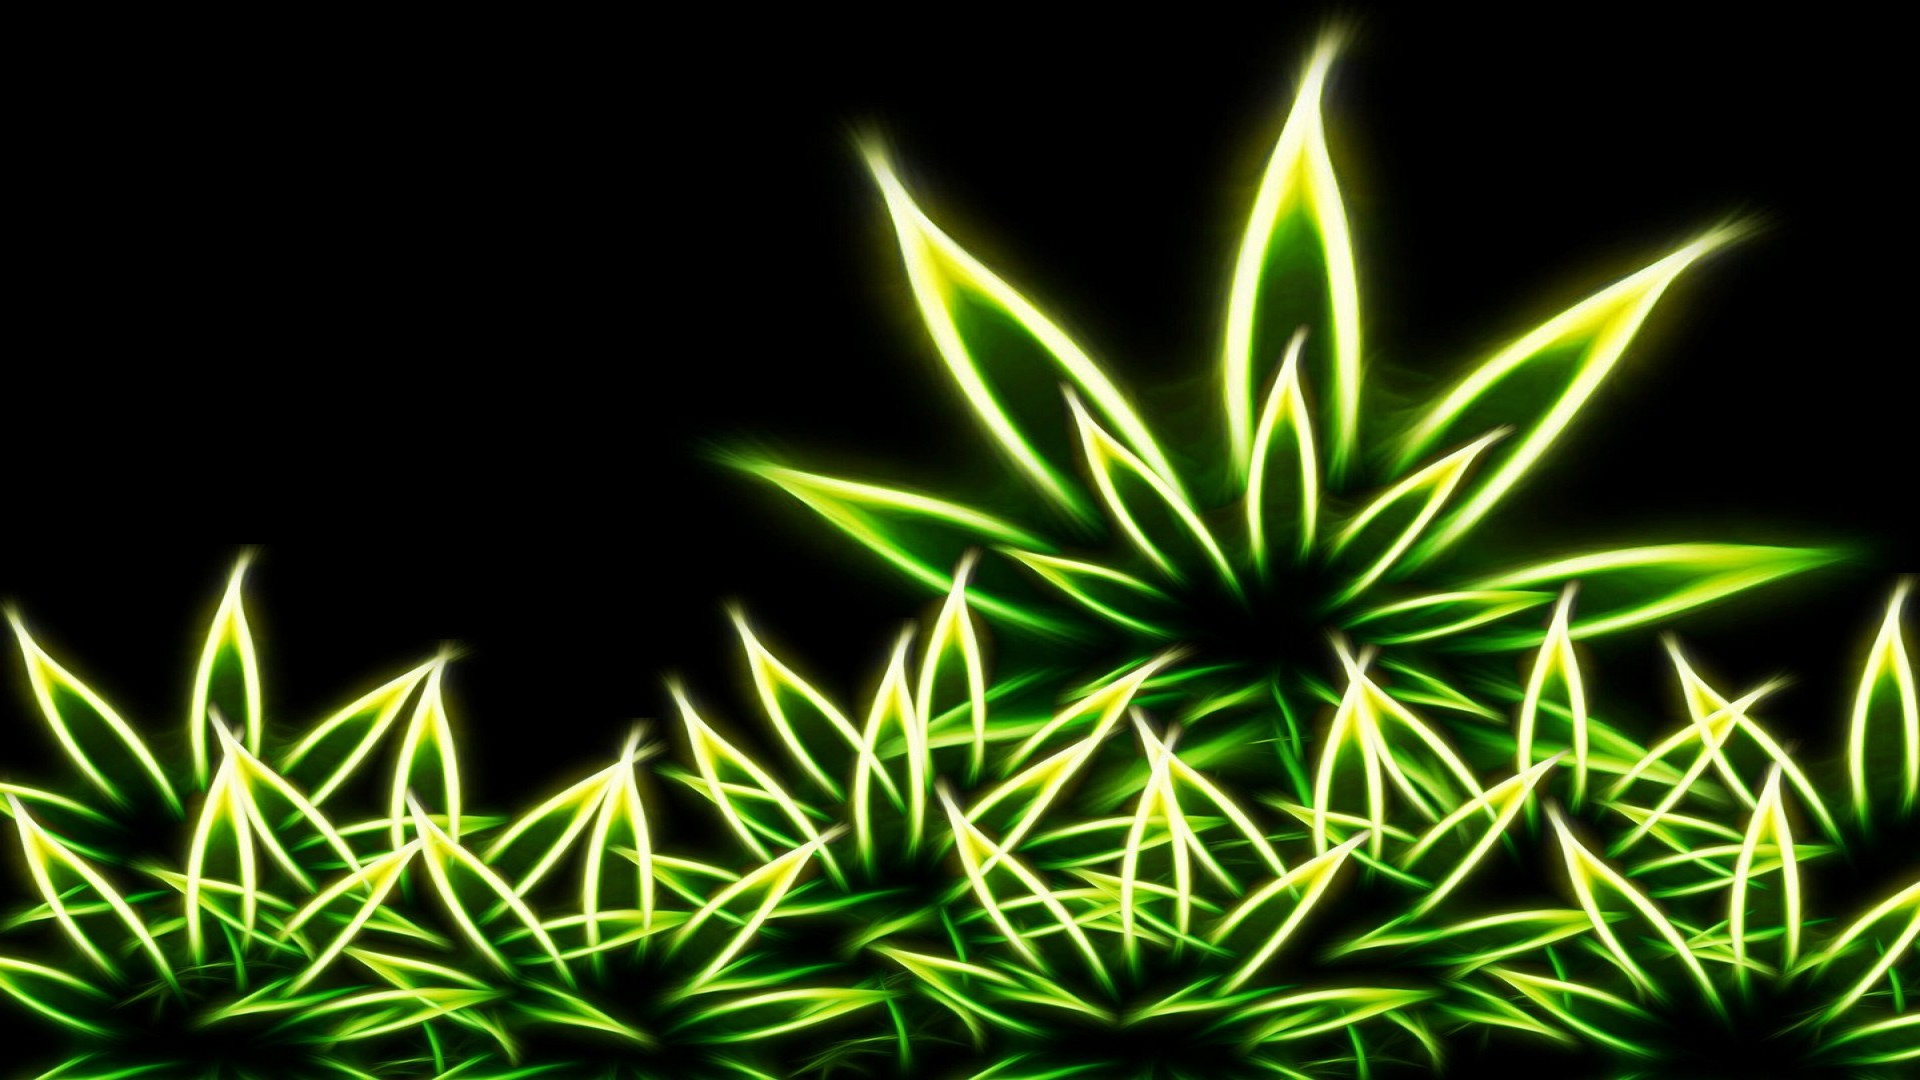 Fotos   Weed Girl Wallpaper With 1920x1200 Resolution 1920x1080